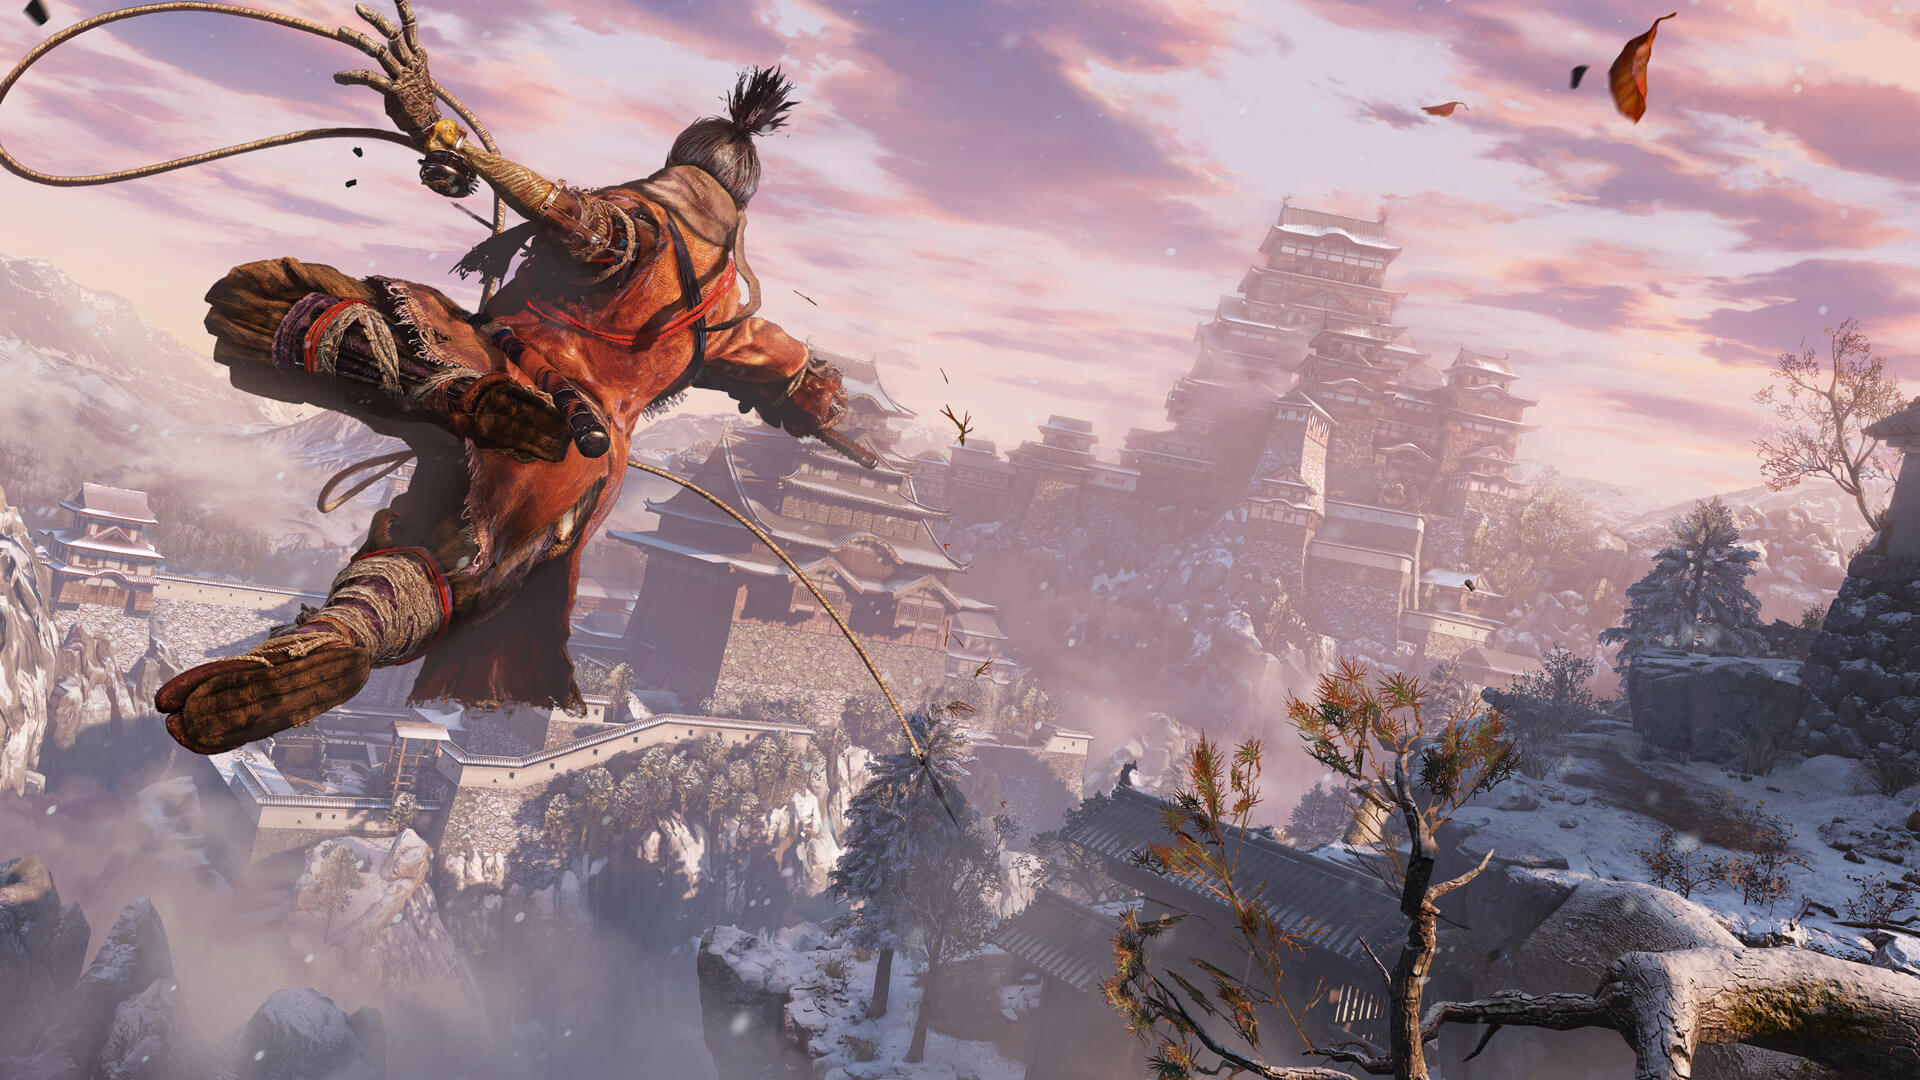 This mod for Sekiro: Shadow Die Twice overhauls its Level of Detail, significantly reduces pop-ins